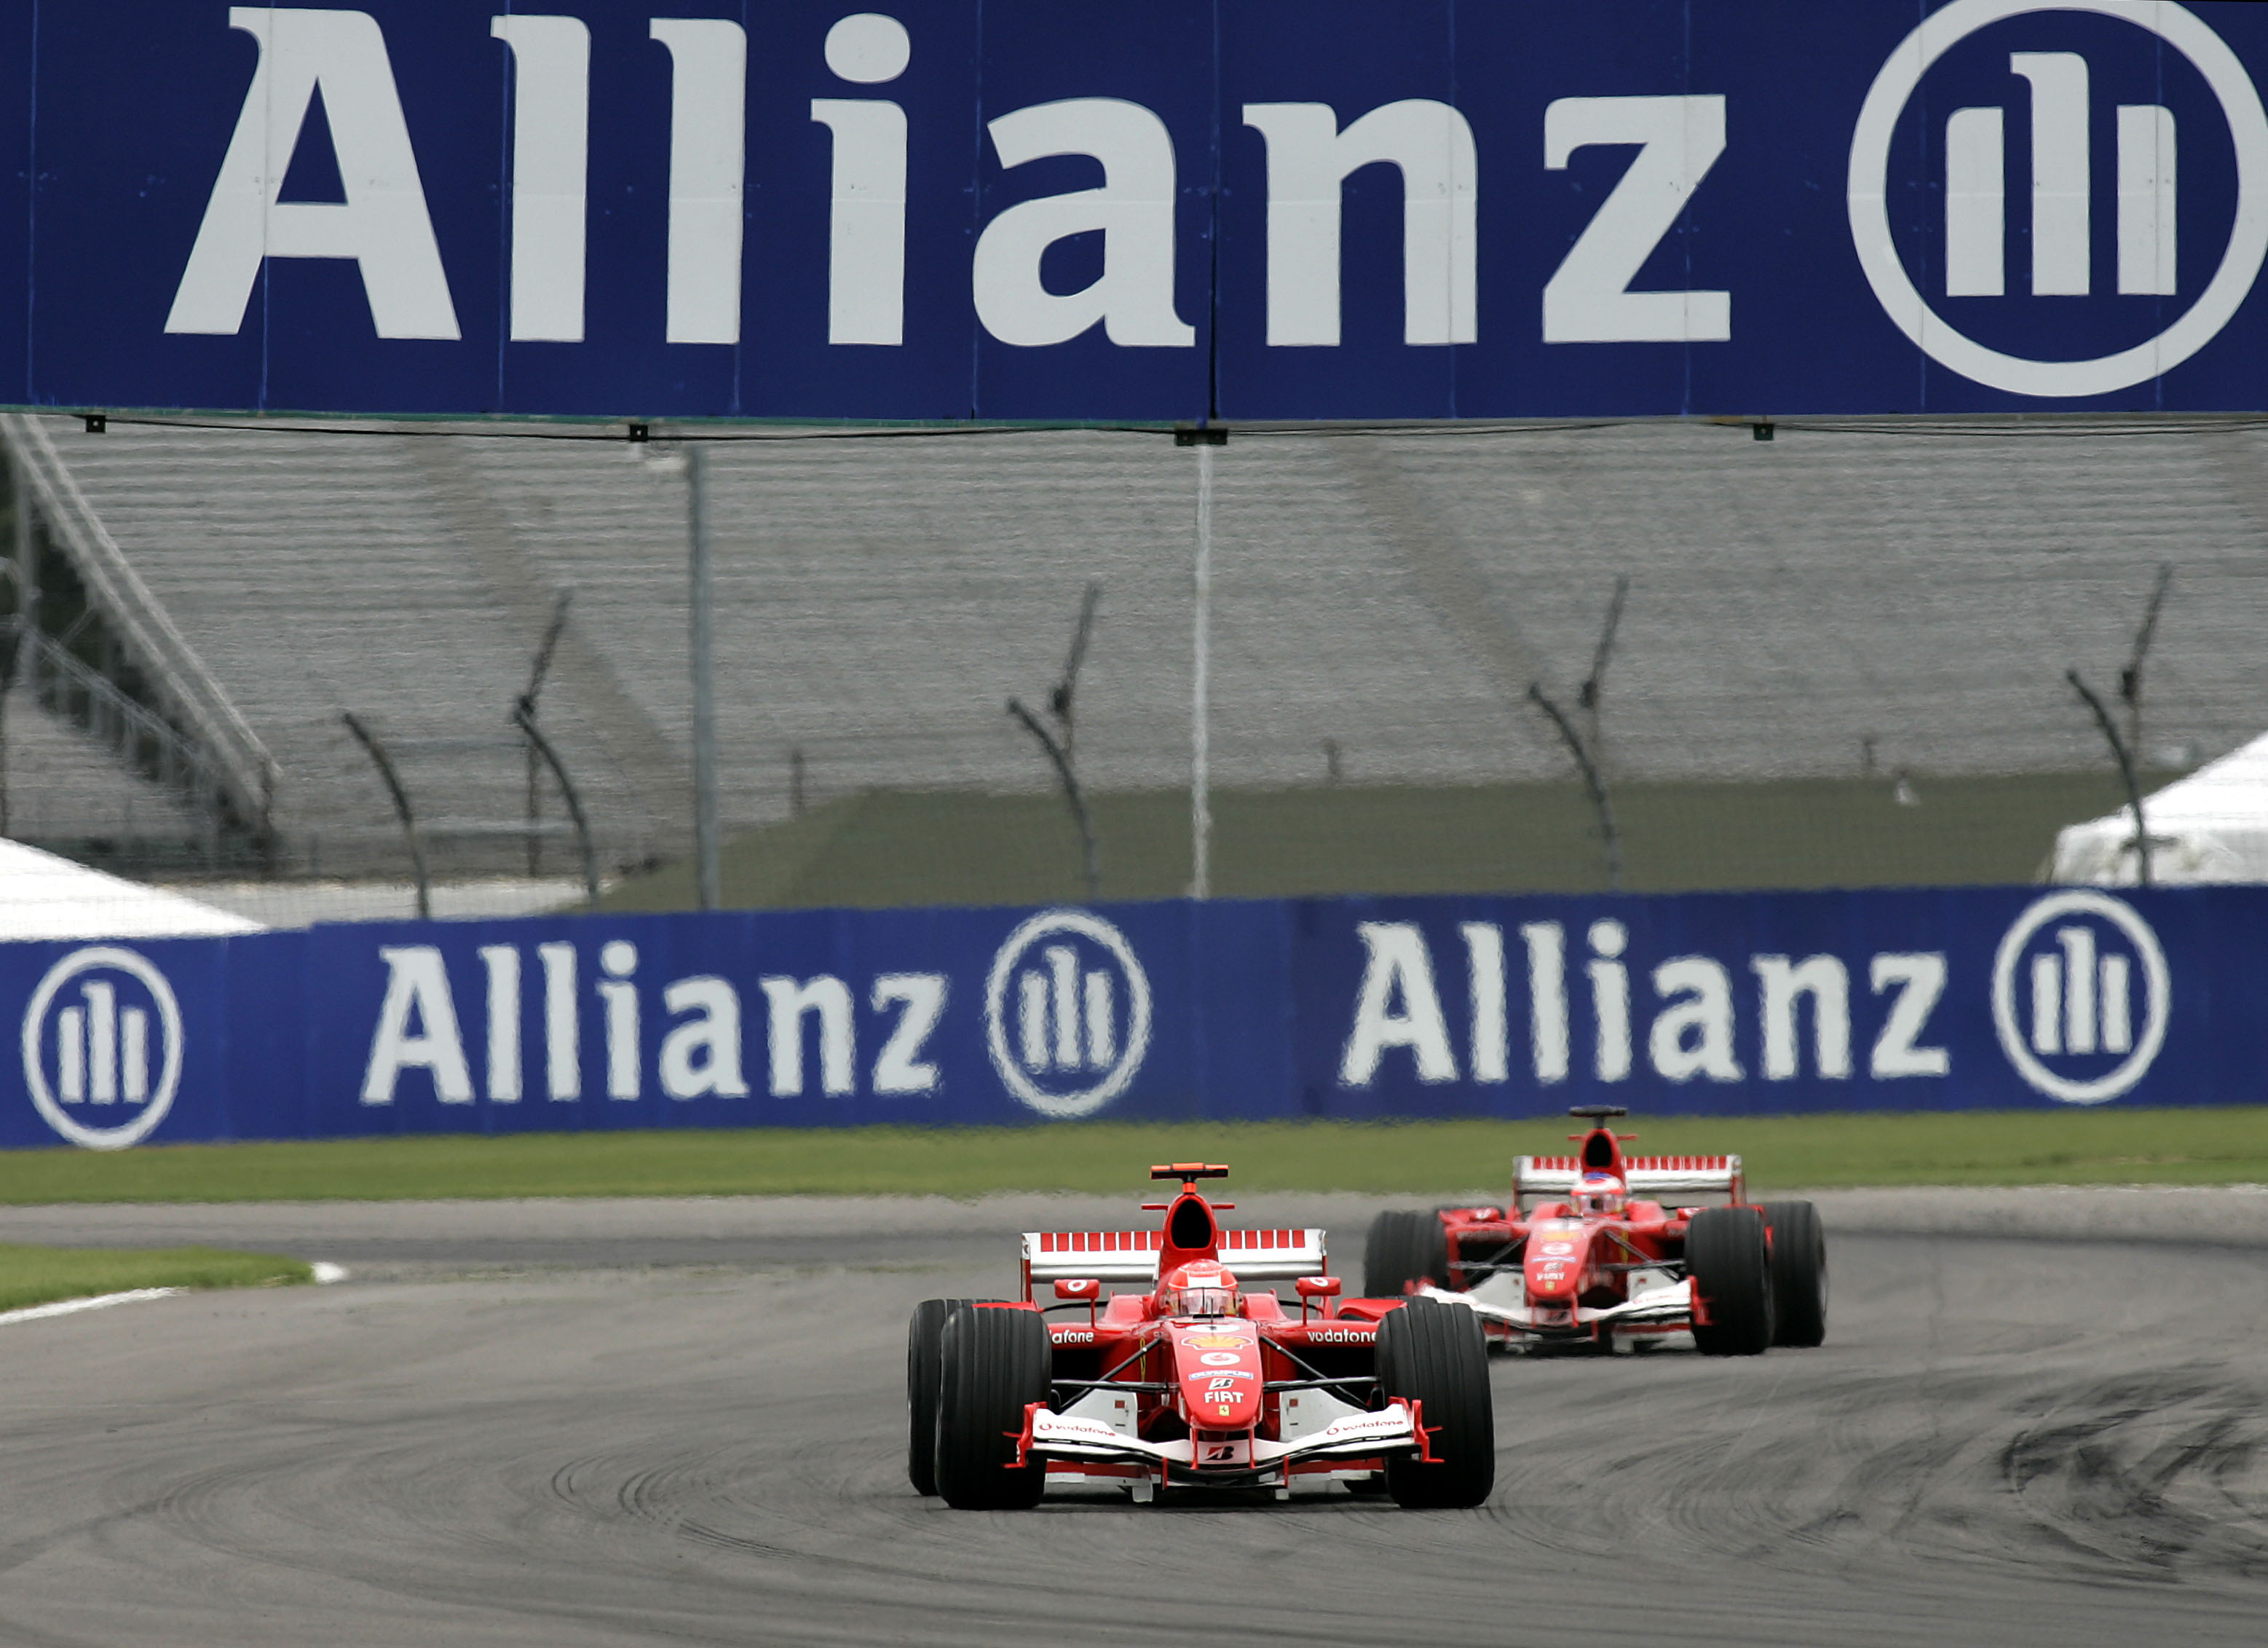 F1's Big Changes in 2022